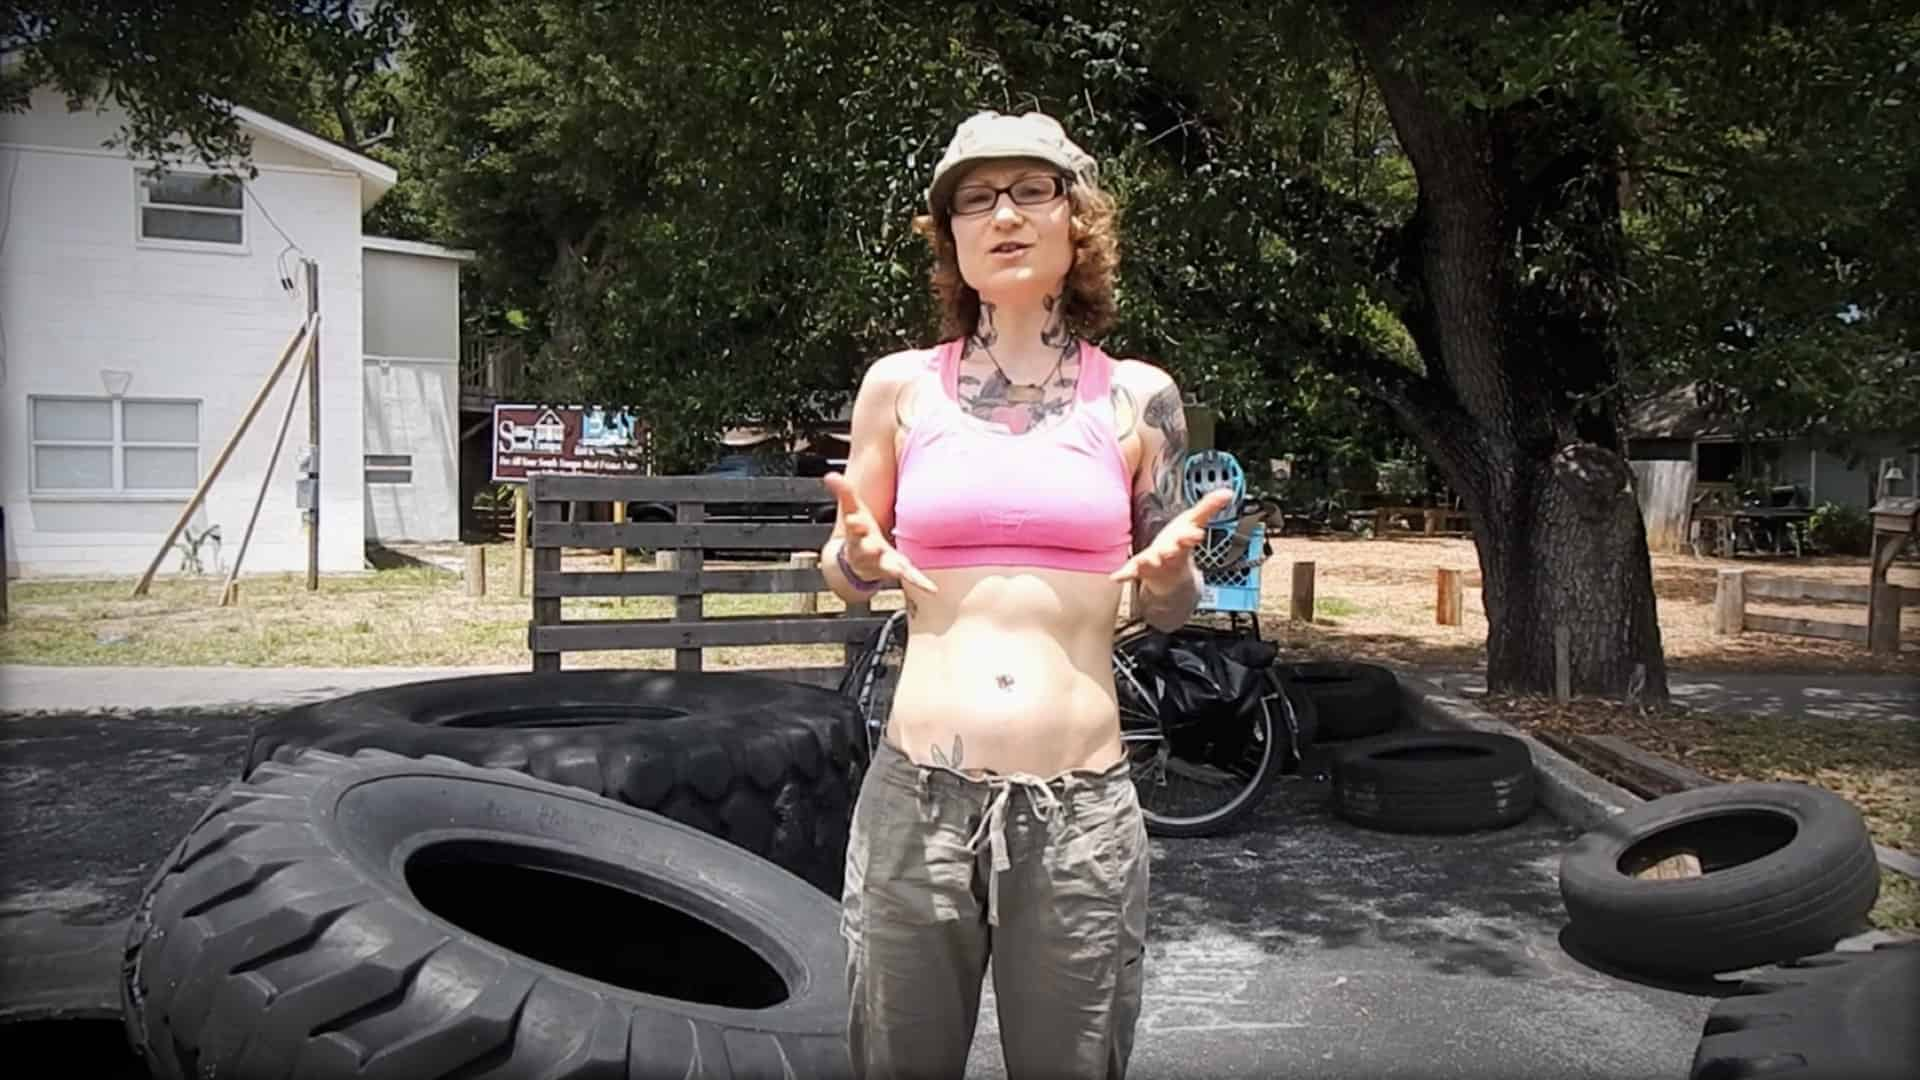 Emily Moran Barwick of Bite Size Vegan is shown in a backyard. She is wearing exercise clothing and next to a large tractor tire.